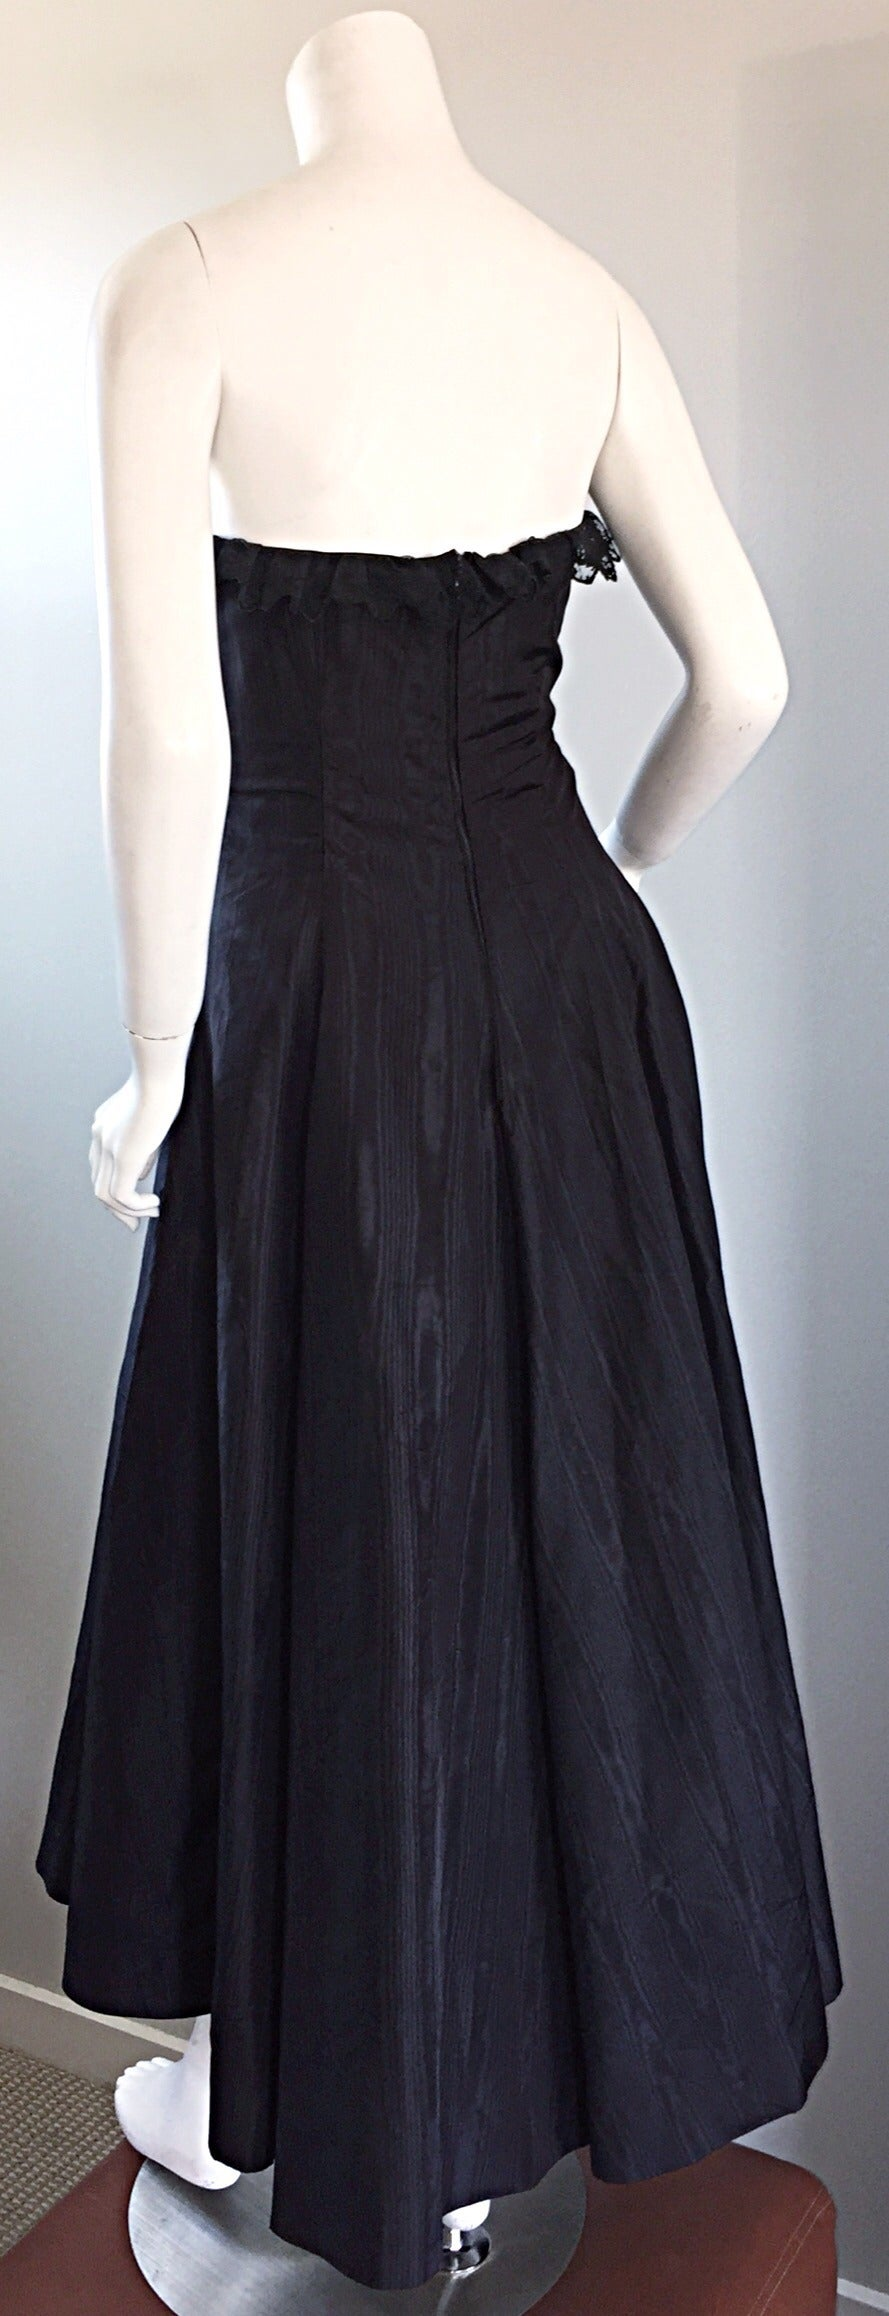 """1950s 50s Black Silk Taffeta + Lace Strapless """" New Look """" Vintage Dress For Sale 3"""